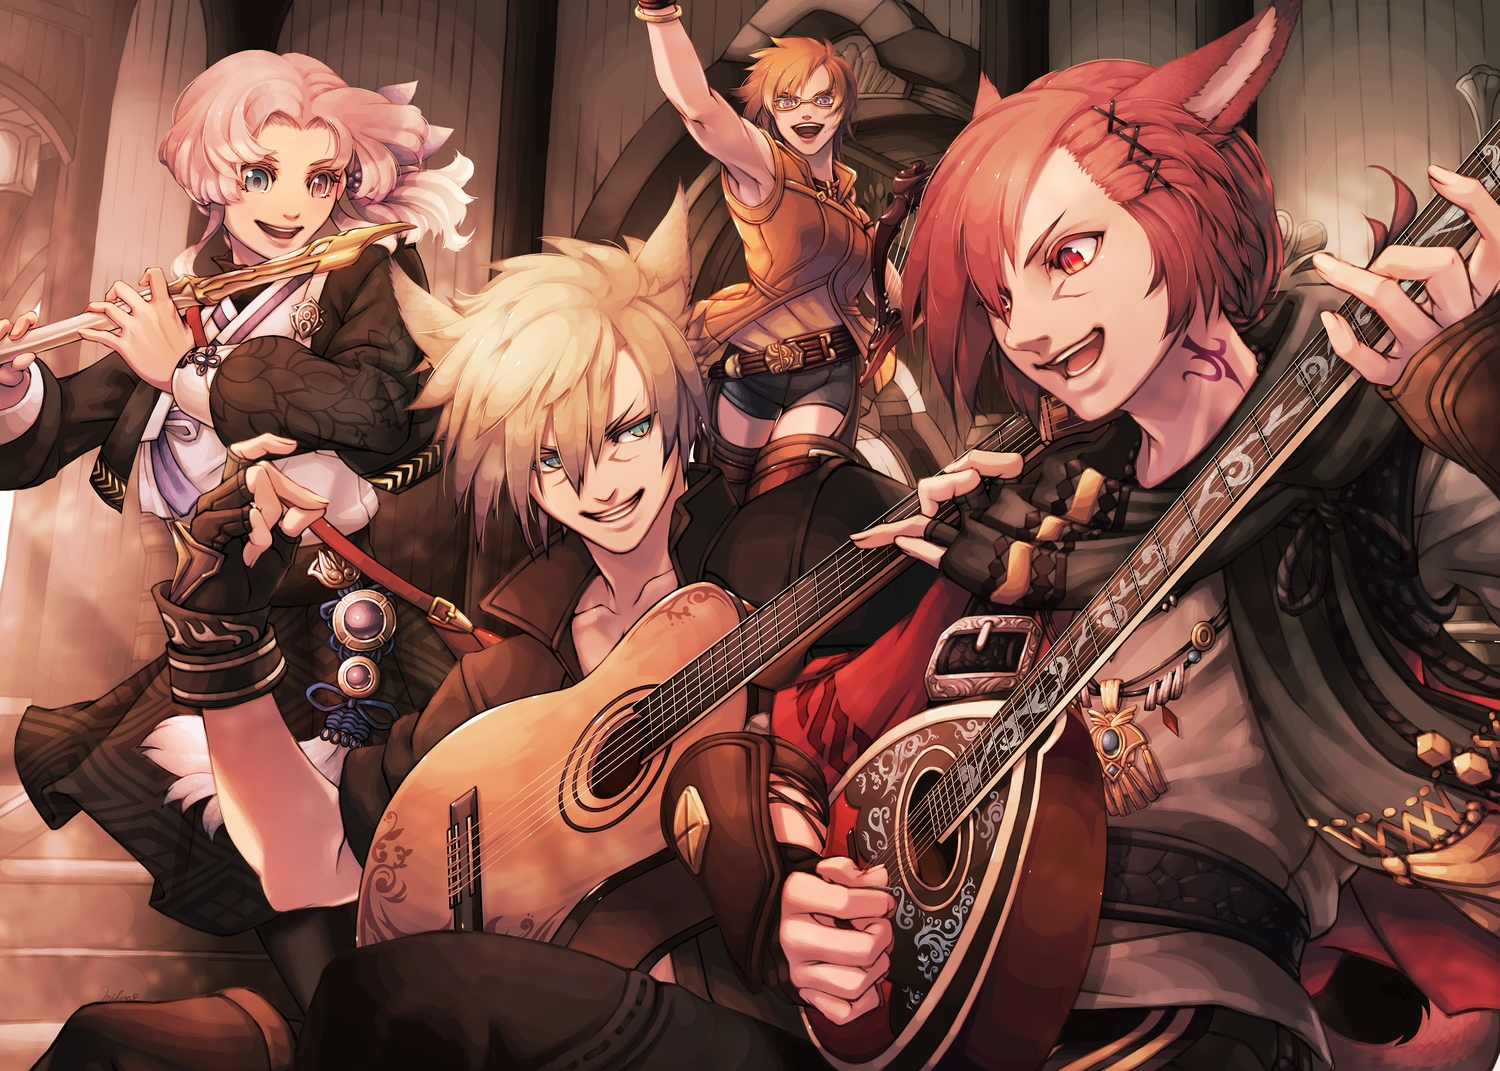 2girls animal_ears bicolored_eyes blonde_hair blue_eyes brown_hair catgirl final_fantasy final_fantasy_xiv glasses gloves g'raha_tia guitar hyur instrument long_hair male mihira_(tainosugatayaki) miqo'te pink_hair purple_eyes red_eyes red_hair short_hair shorts tail tattoo thighhighs